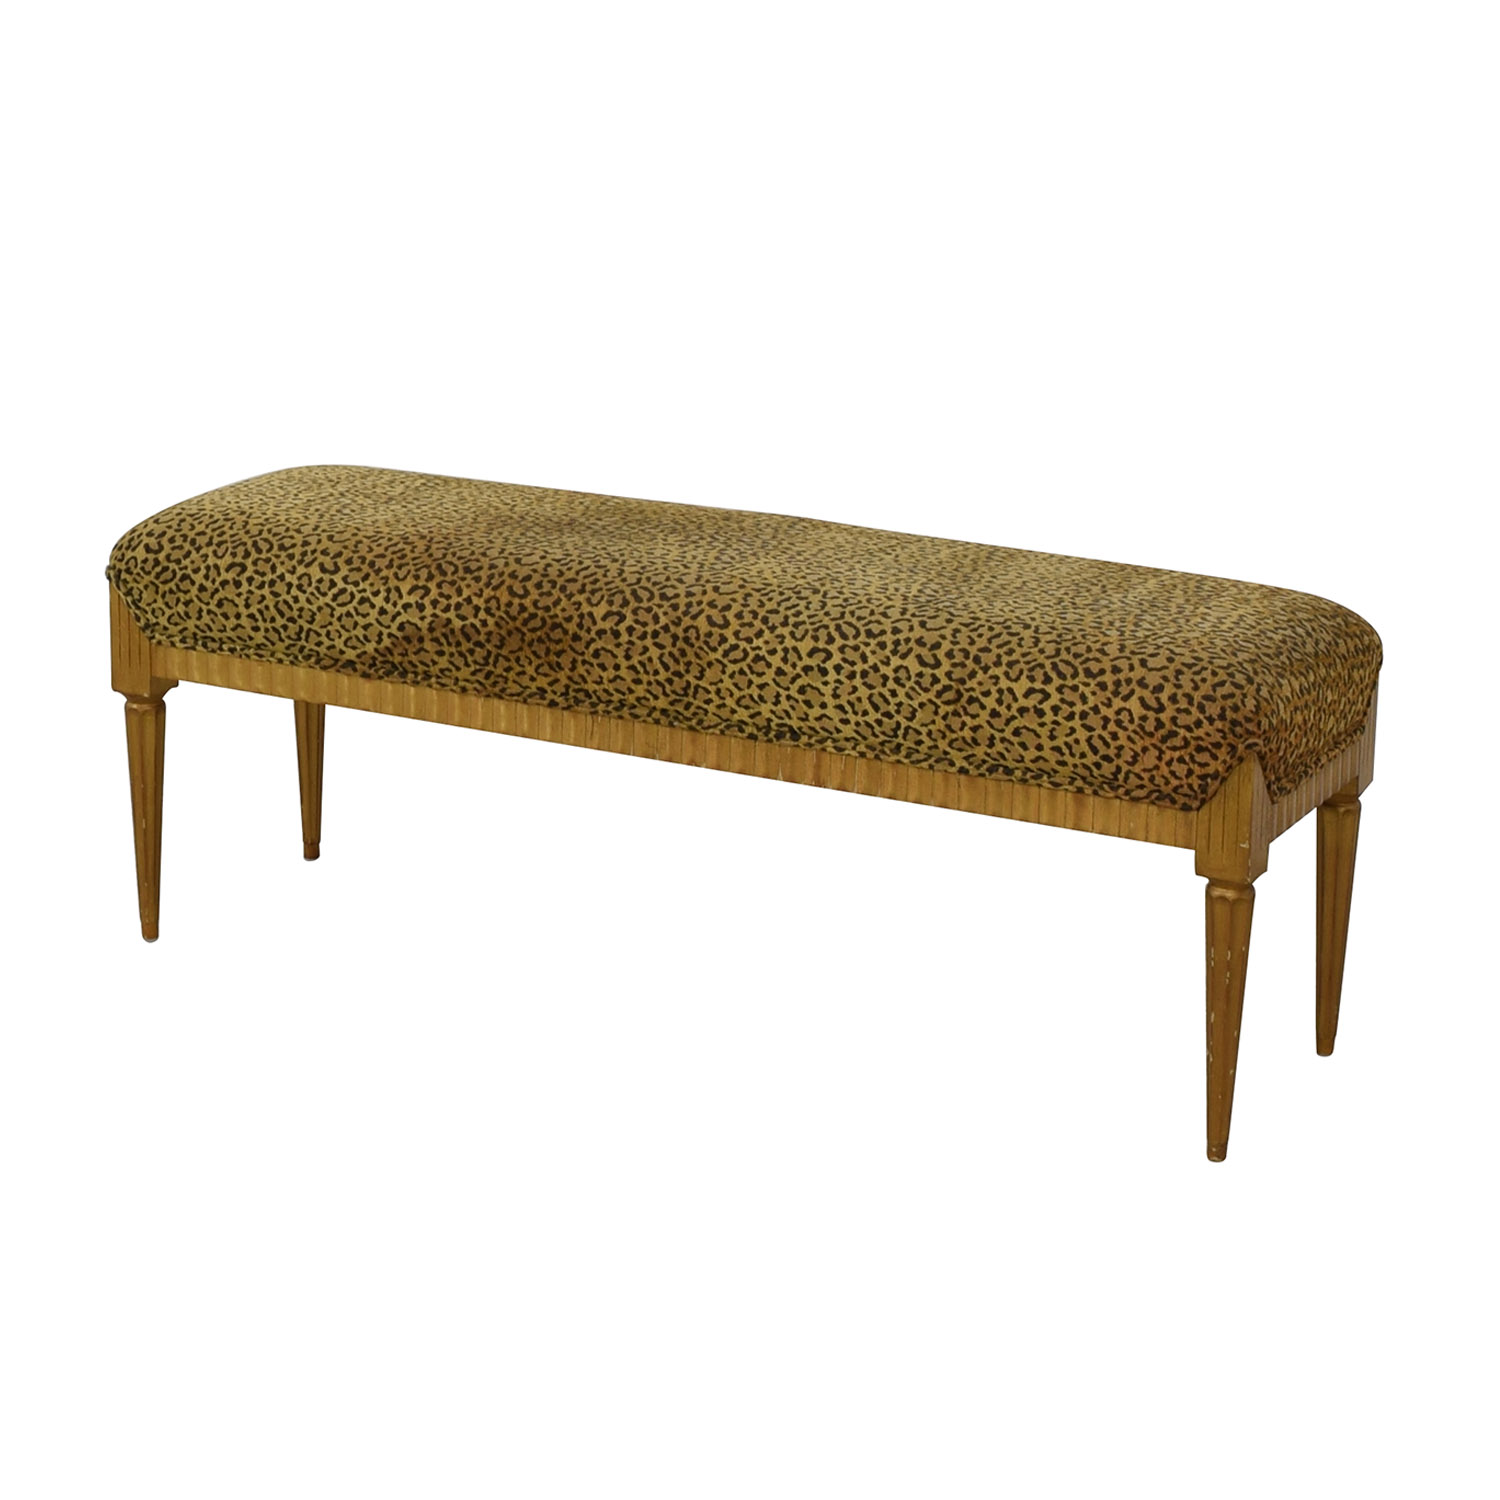 buy Furniture Masters Leopard Print Bench Furniture Masters